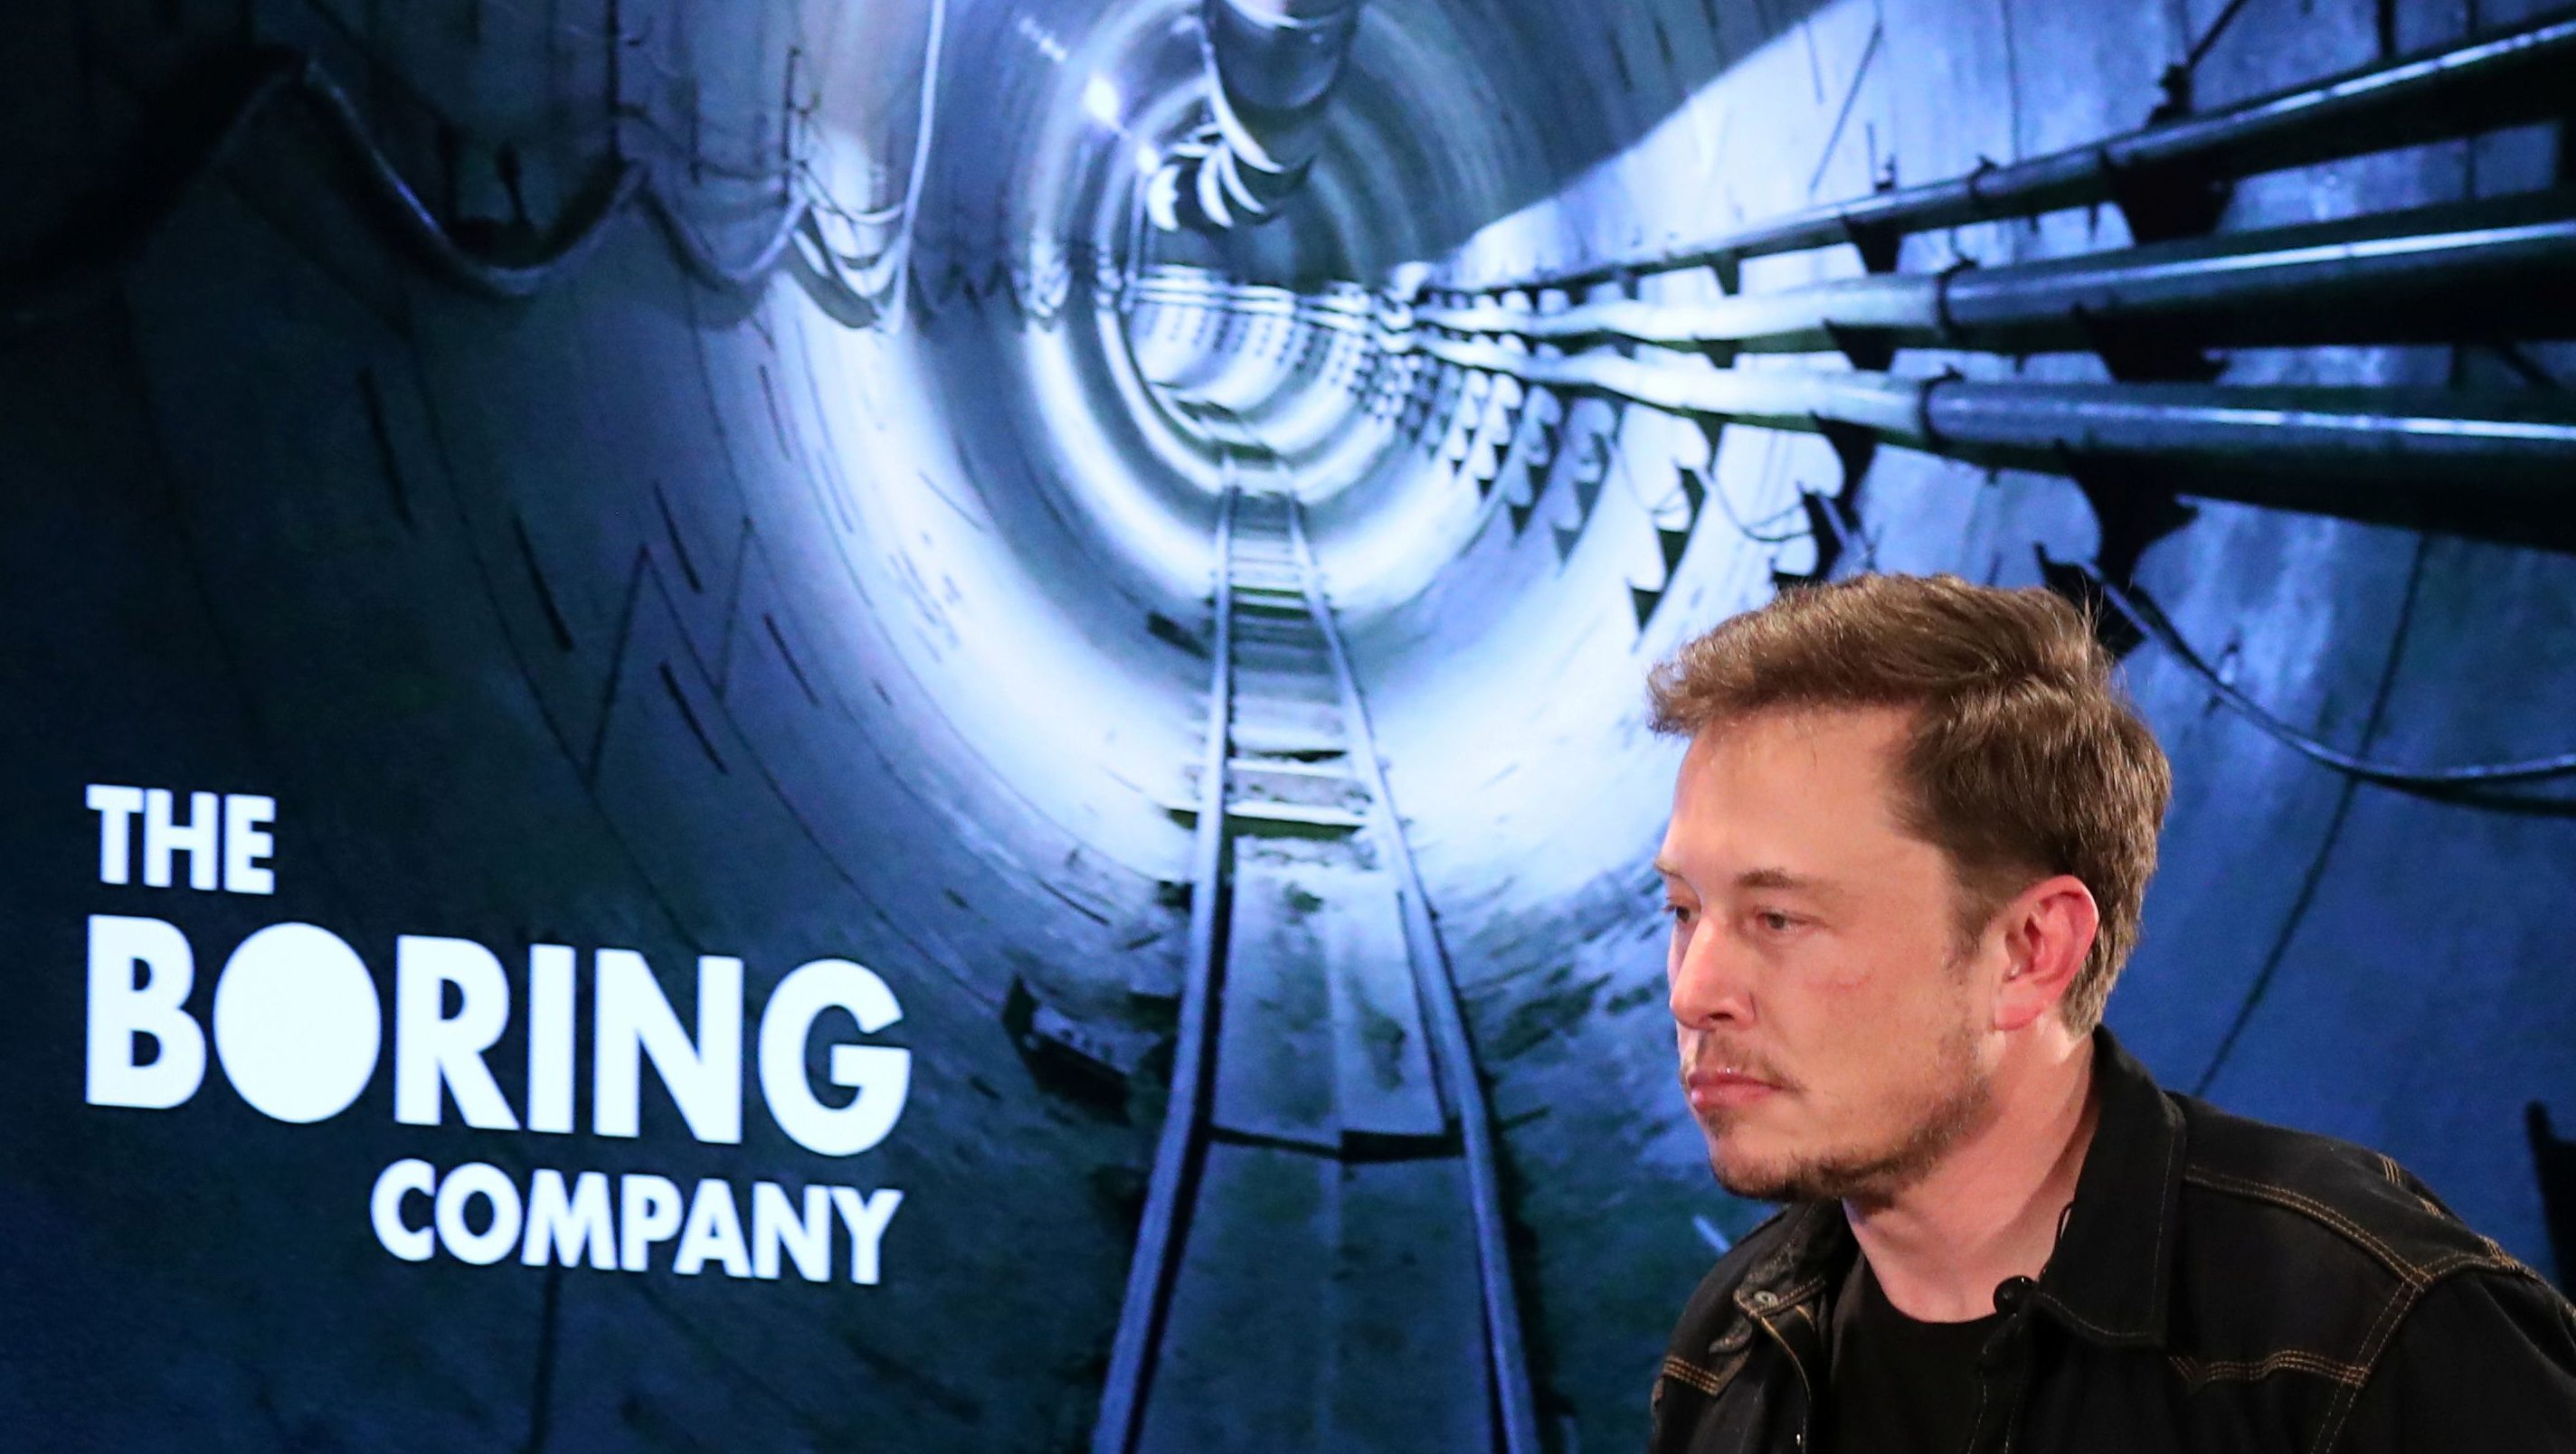 Tesla's sale of parts to Elon Musk's The Boring Company may